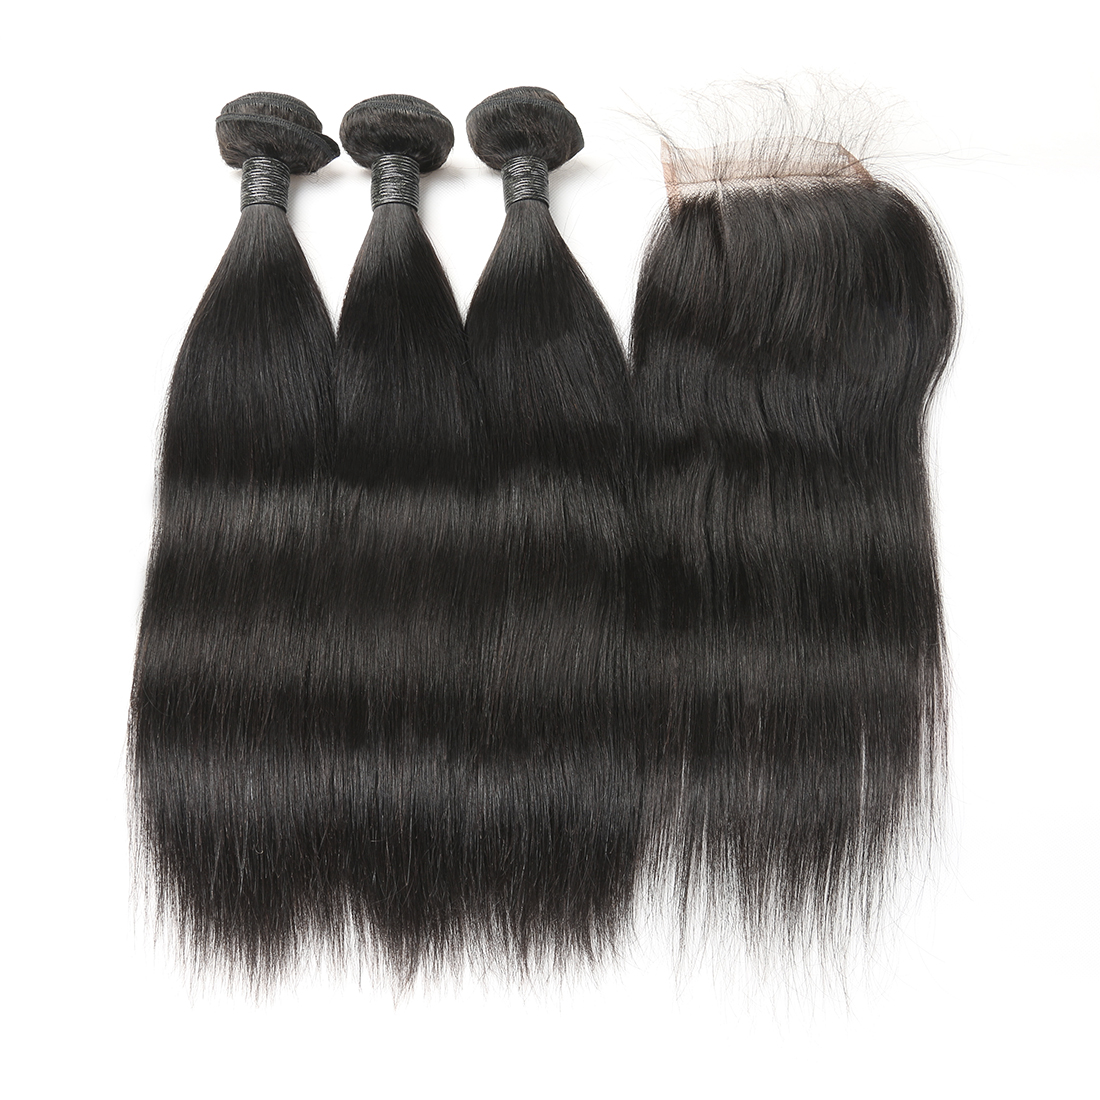 9A Brazilian Straight Human Virgin Hair Weave 4 Bundles With Lace Closure